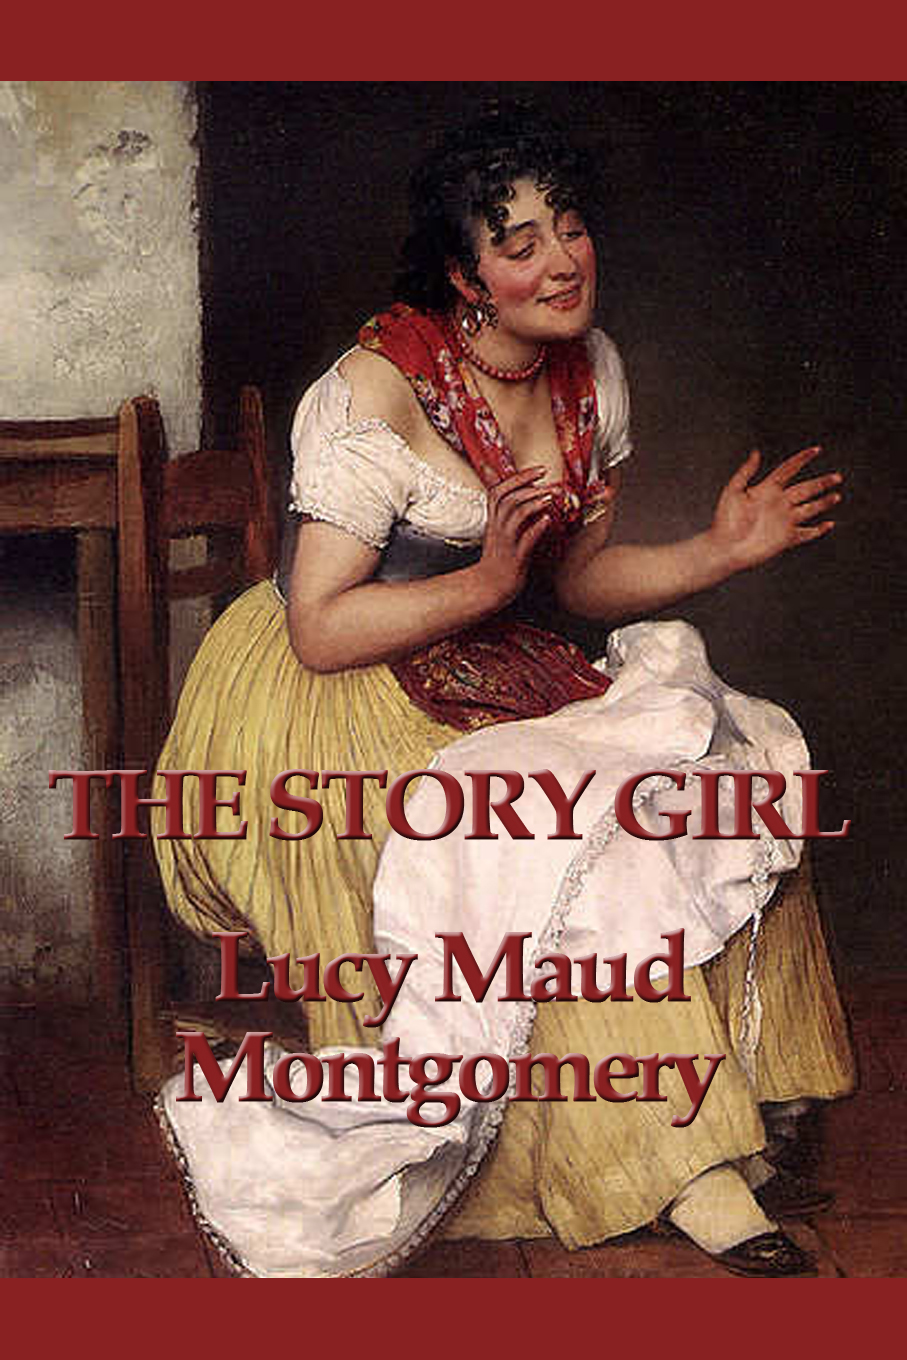 Cover Image: The Story Girl